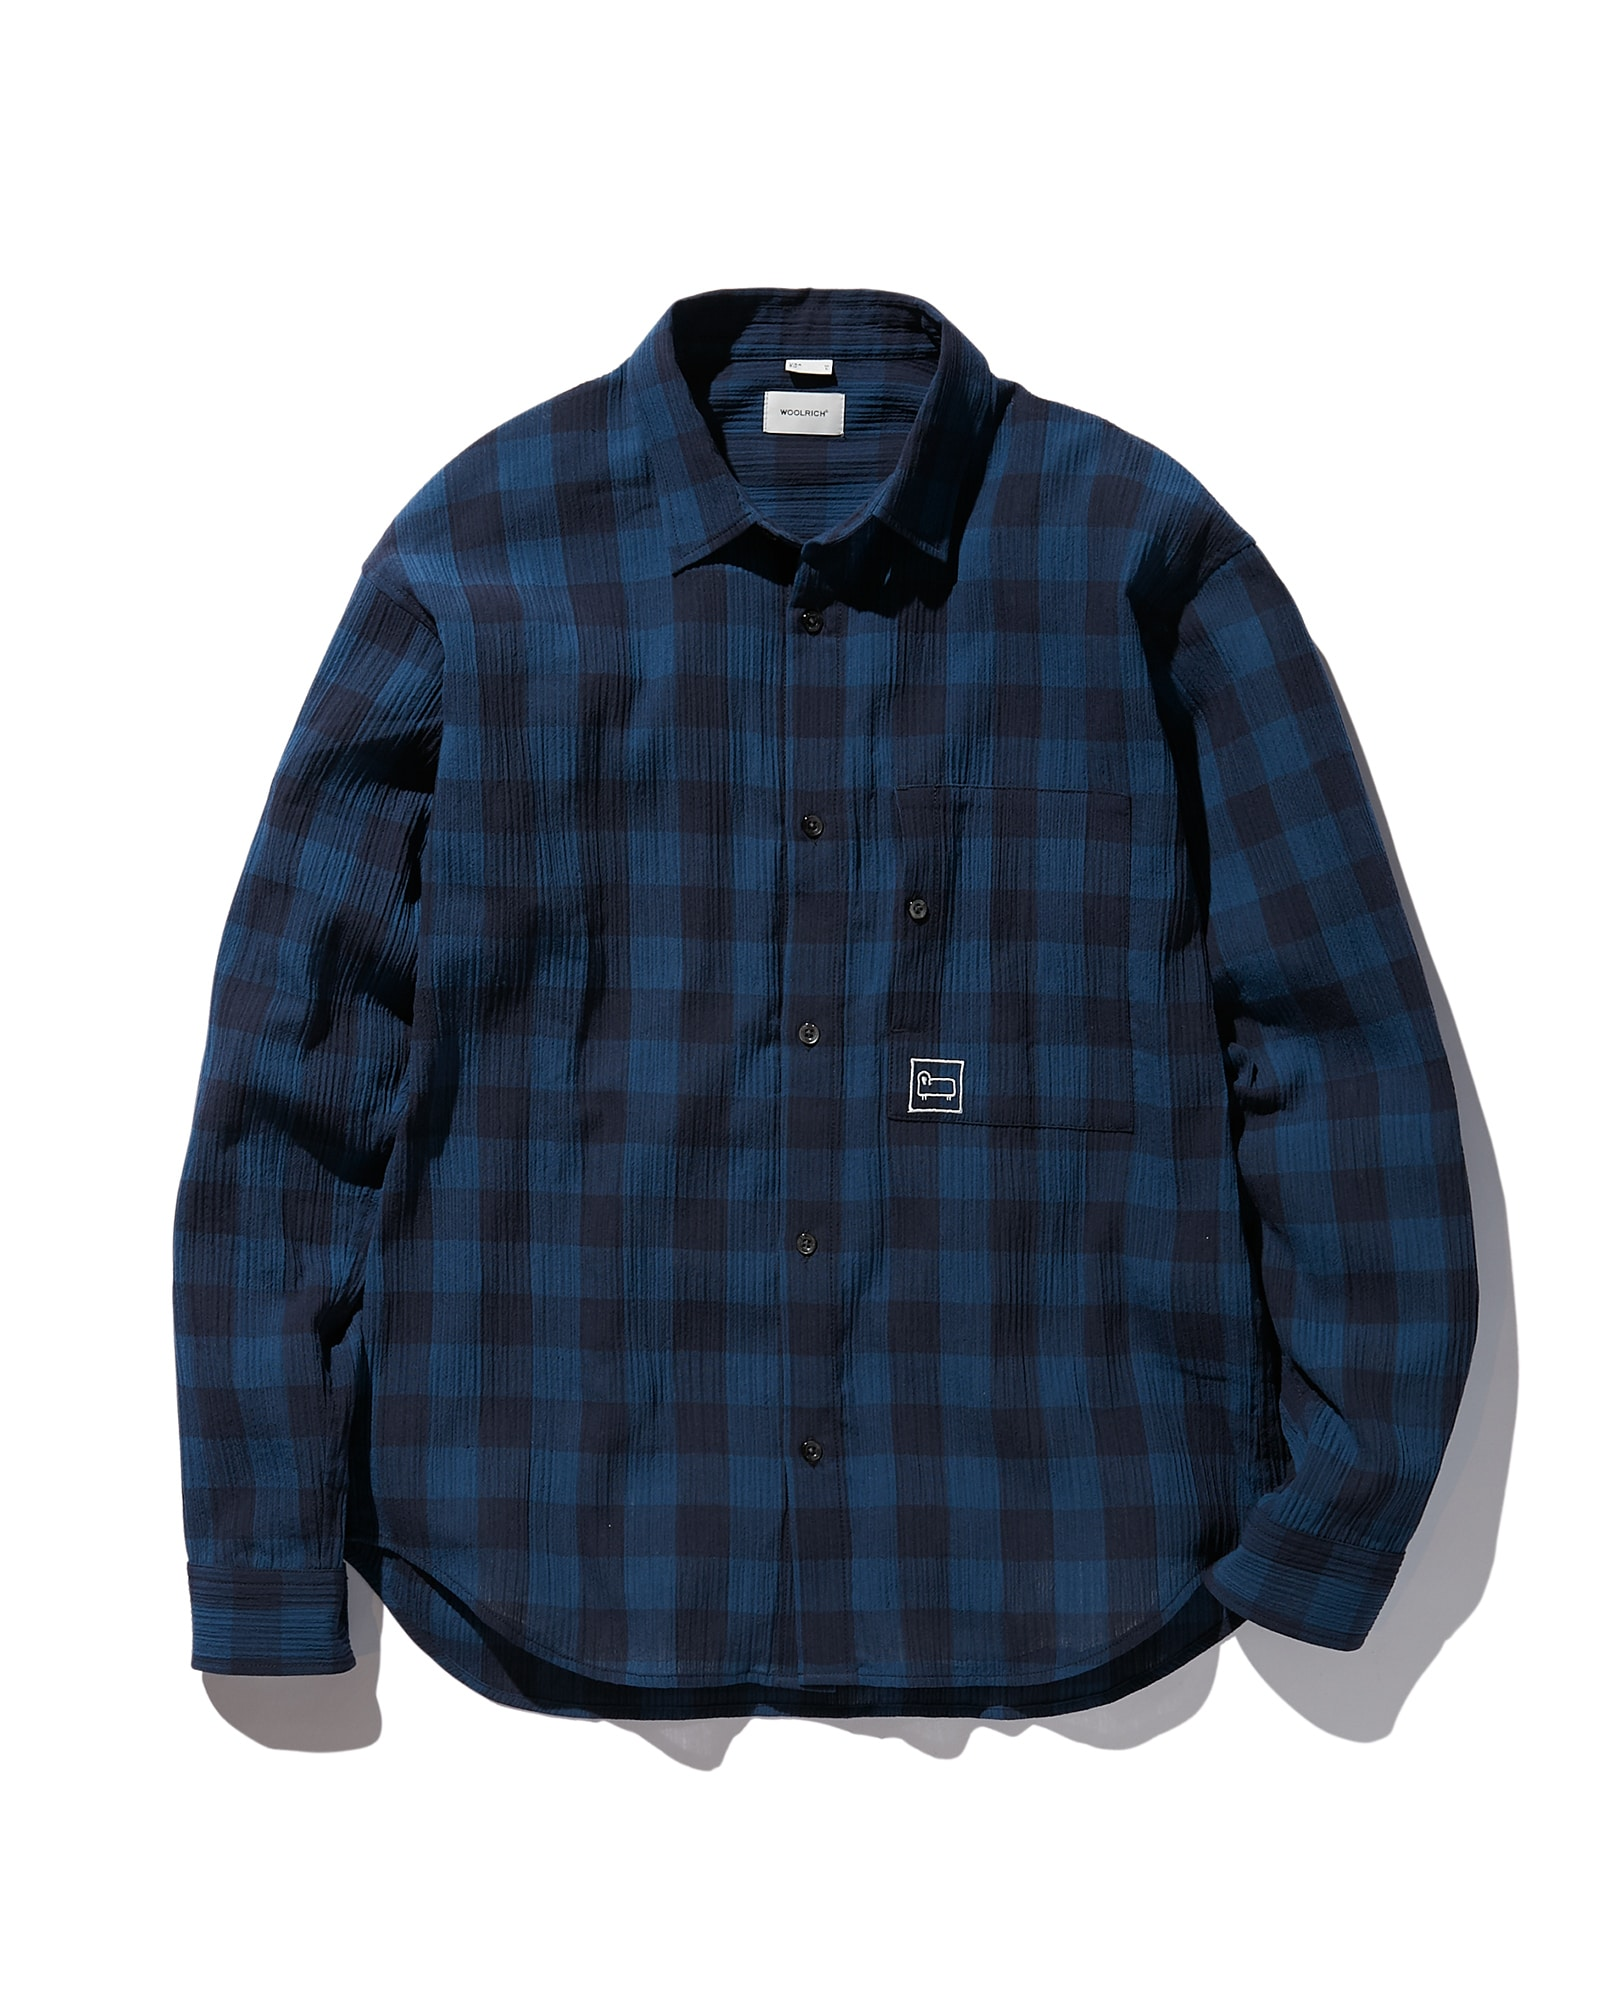 BAXTER LIGHTWEIGHT LONG SLEEVE SHIRT